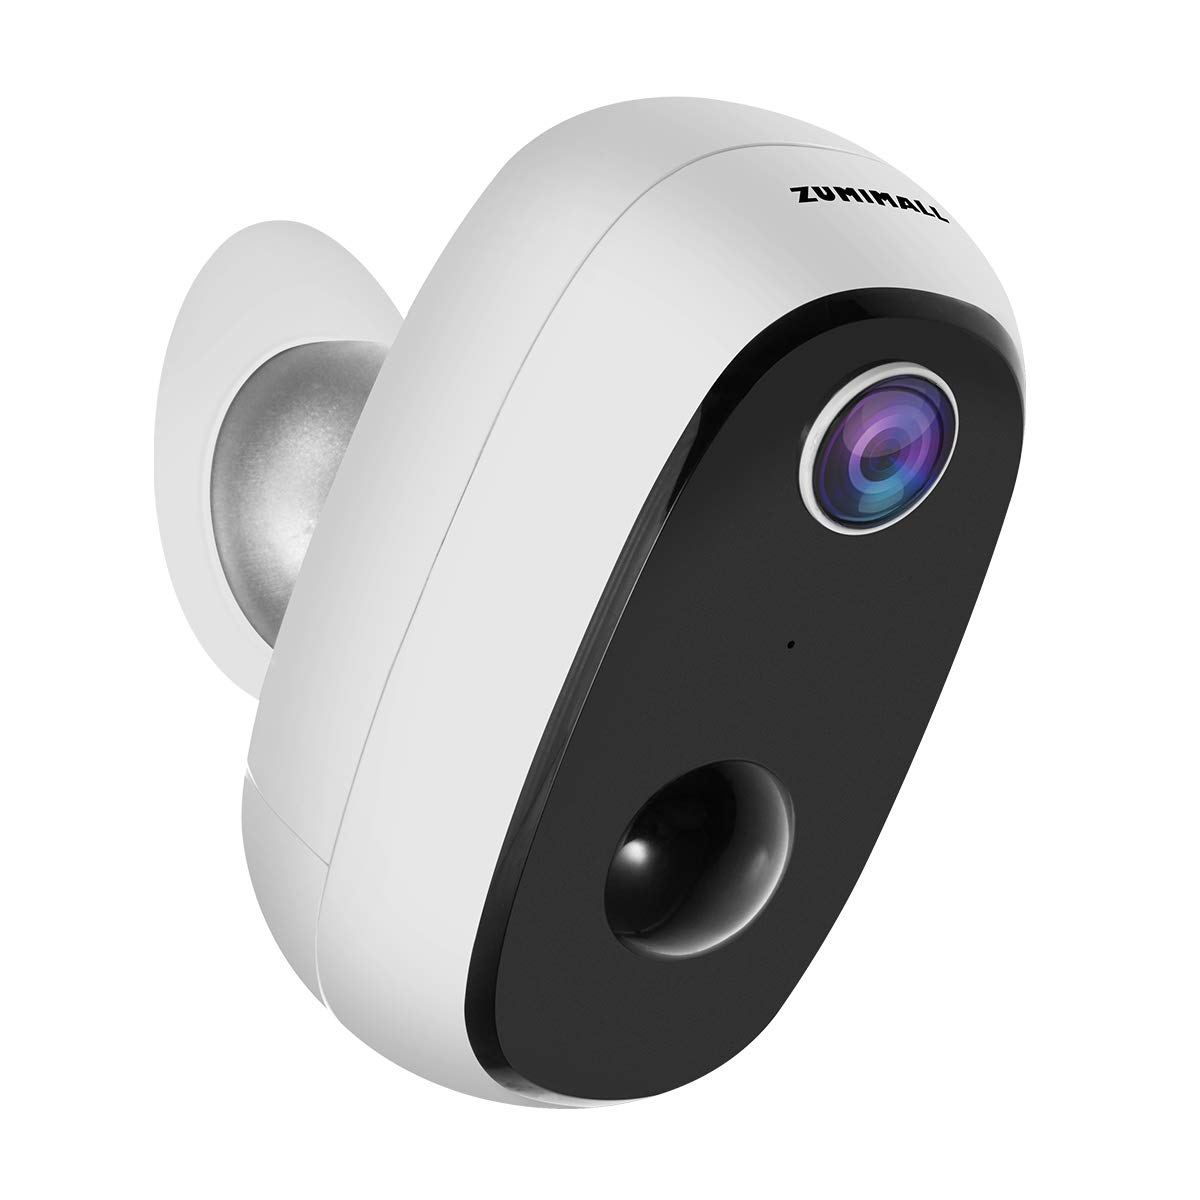 Wireless Rechargeable Battery Powered WiFi Camera, Outdoor Security Camera with 2-Way Audio, 1080P Home Surveillance Camera with Motion Detection Night Vision, Cloud Storage/SD Slot